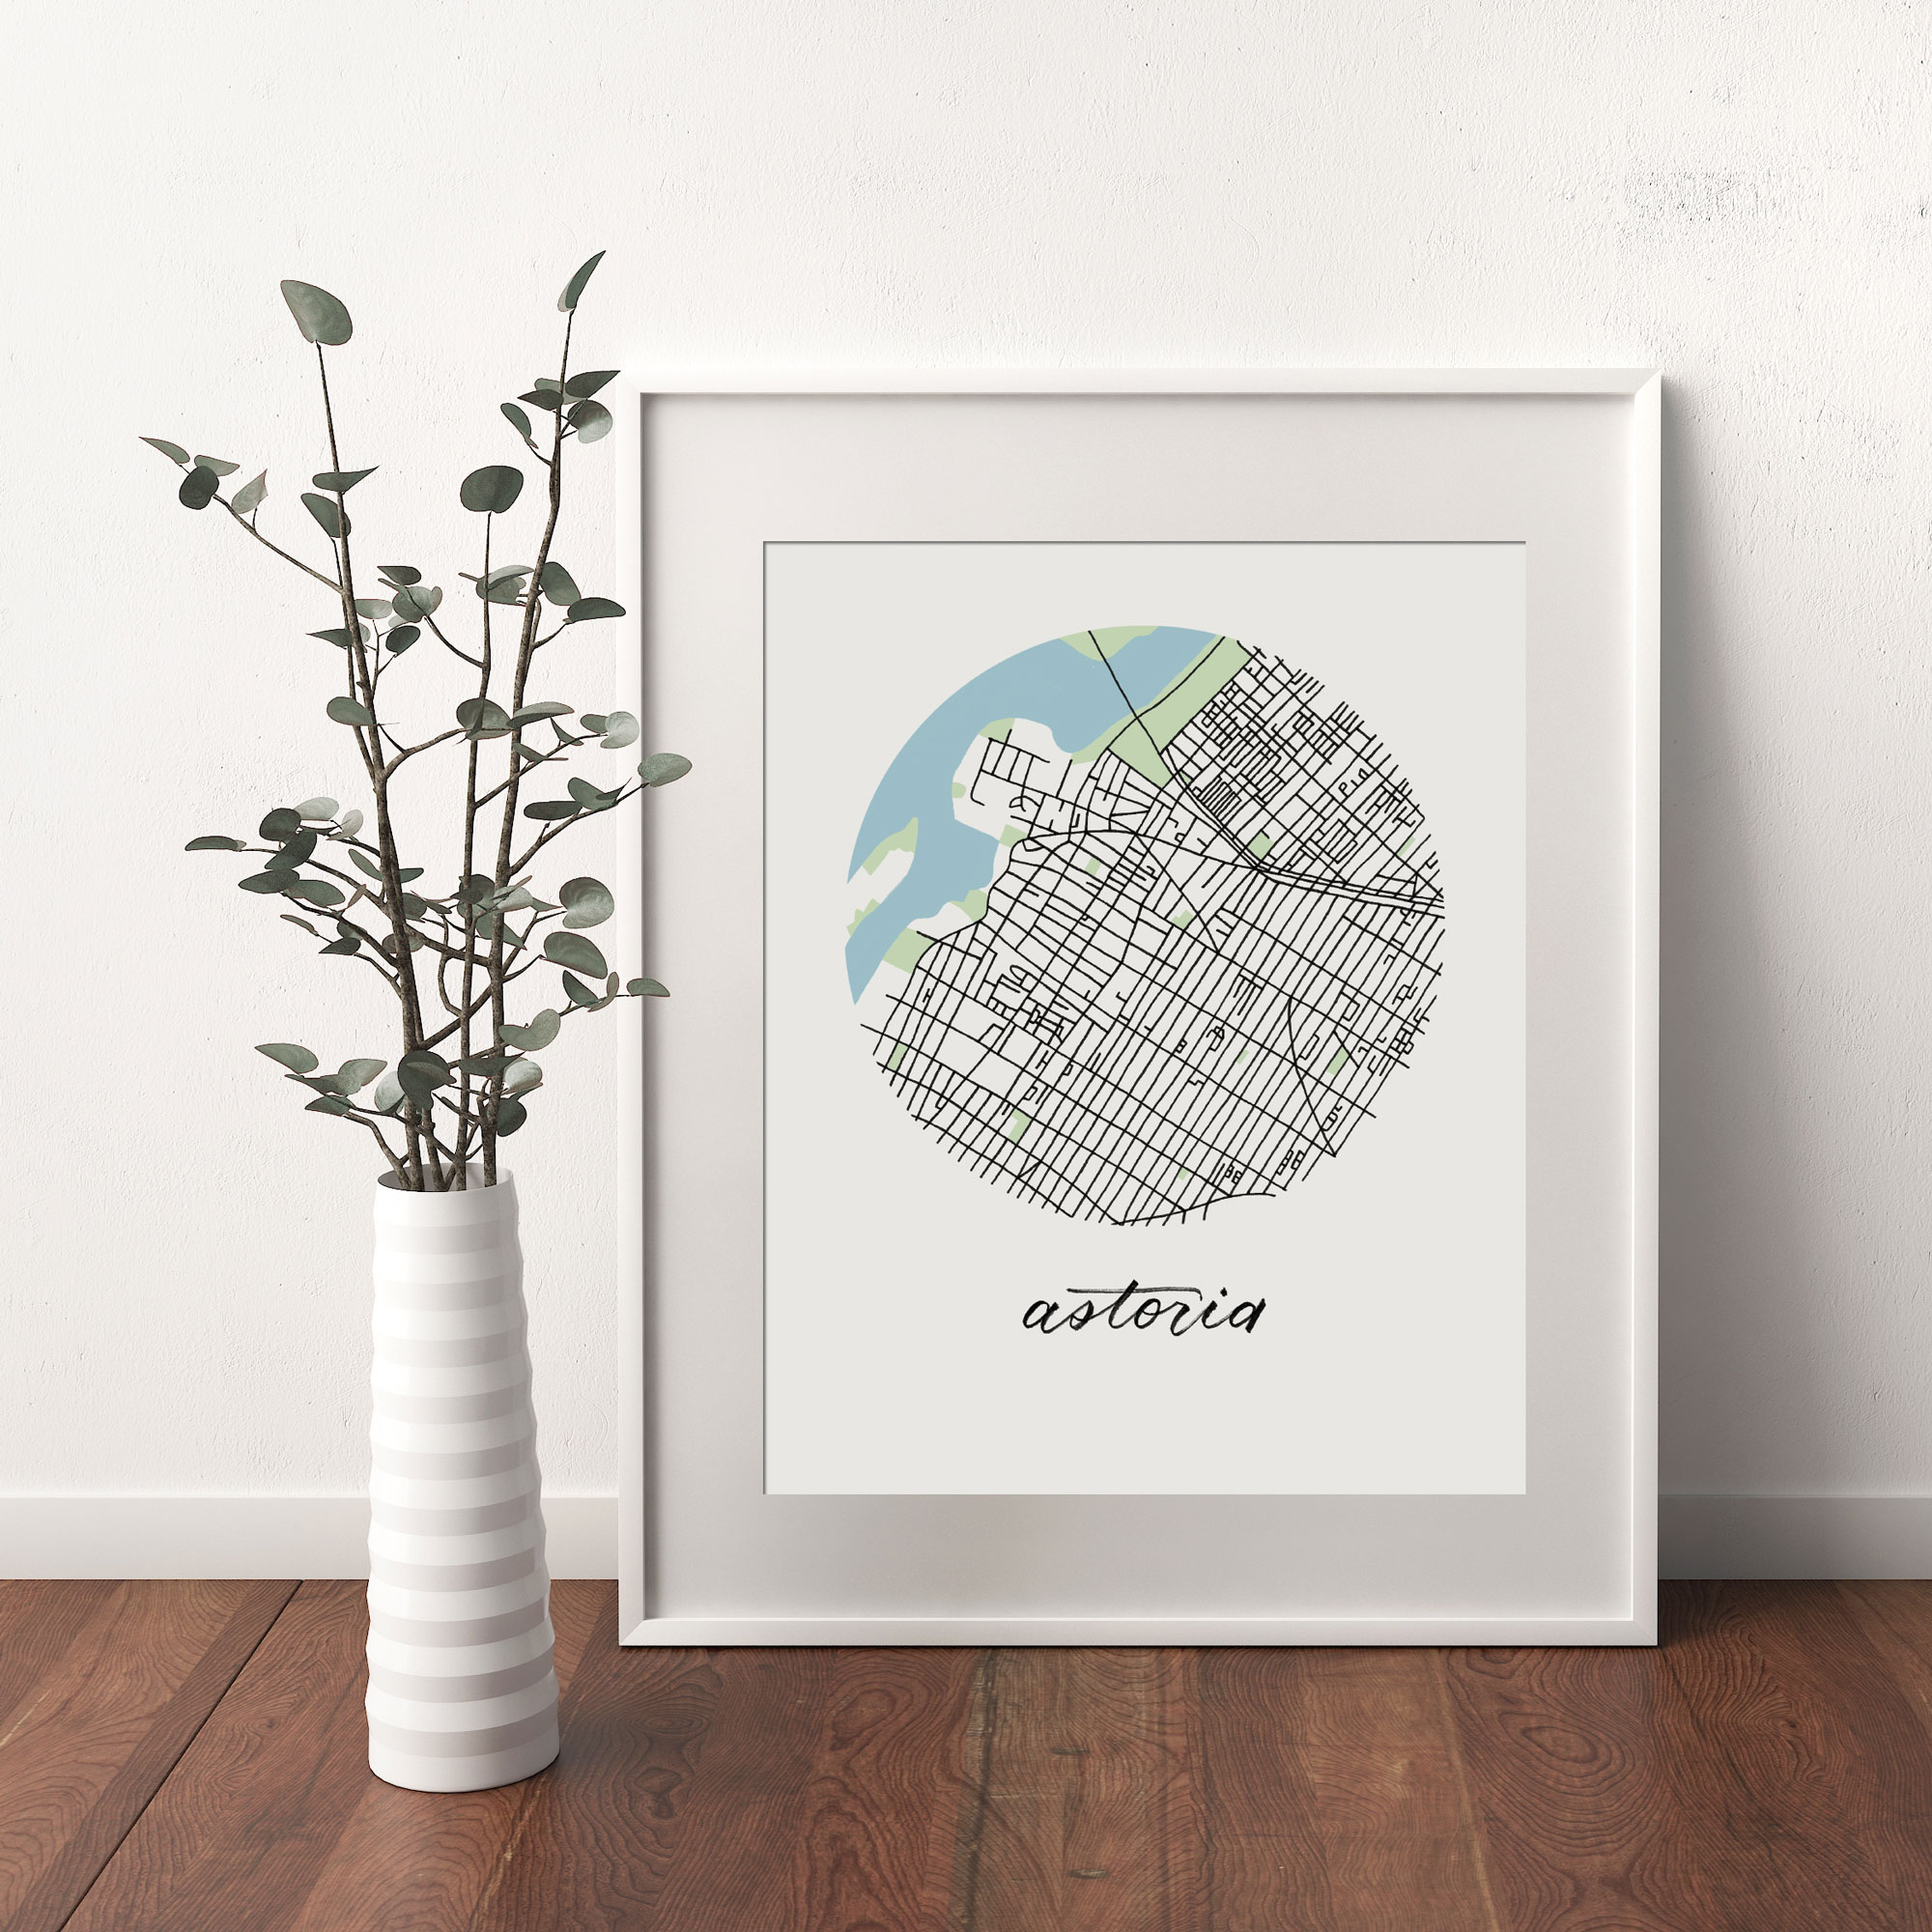 Astoria, Queens Map print framed and leaning on white wall next to dried leaves in a vase